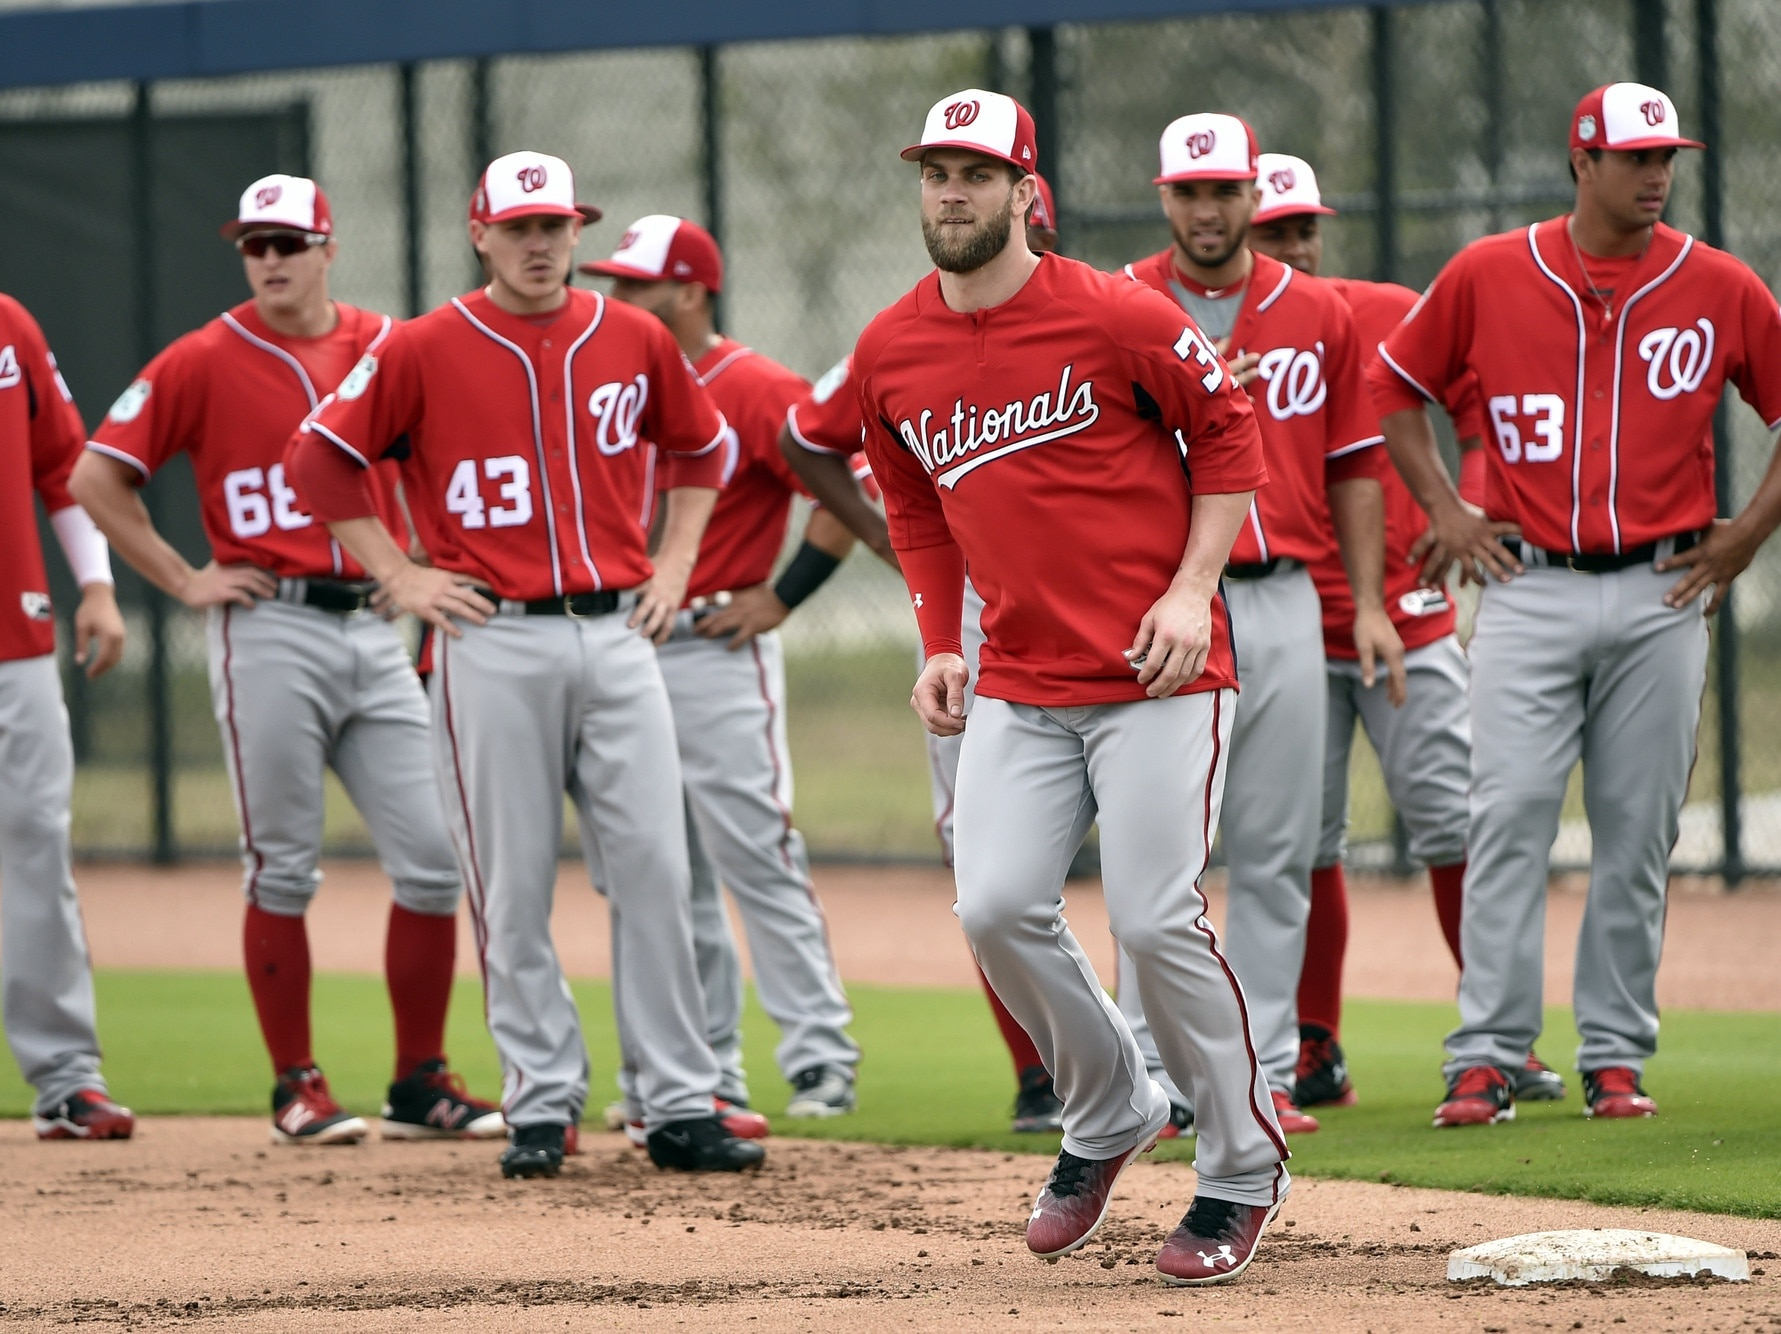 Feb 21, 2017; West Palm Beach, FL, USA; Washington Nationals right fielder Bryce Harper (34) works on running drills during spring training workouts at The Ballpark of the Palm Beaches. Mandatory Credit: Steve Mitchell-USA TODAY Sports